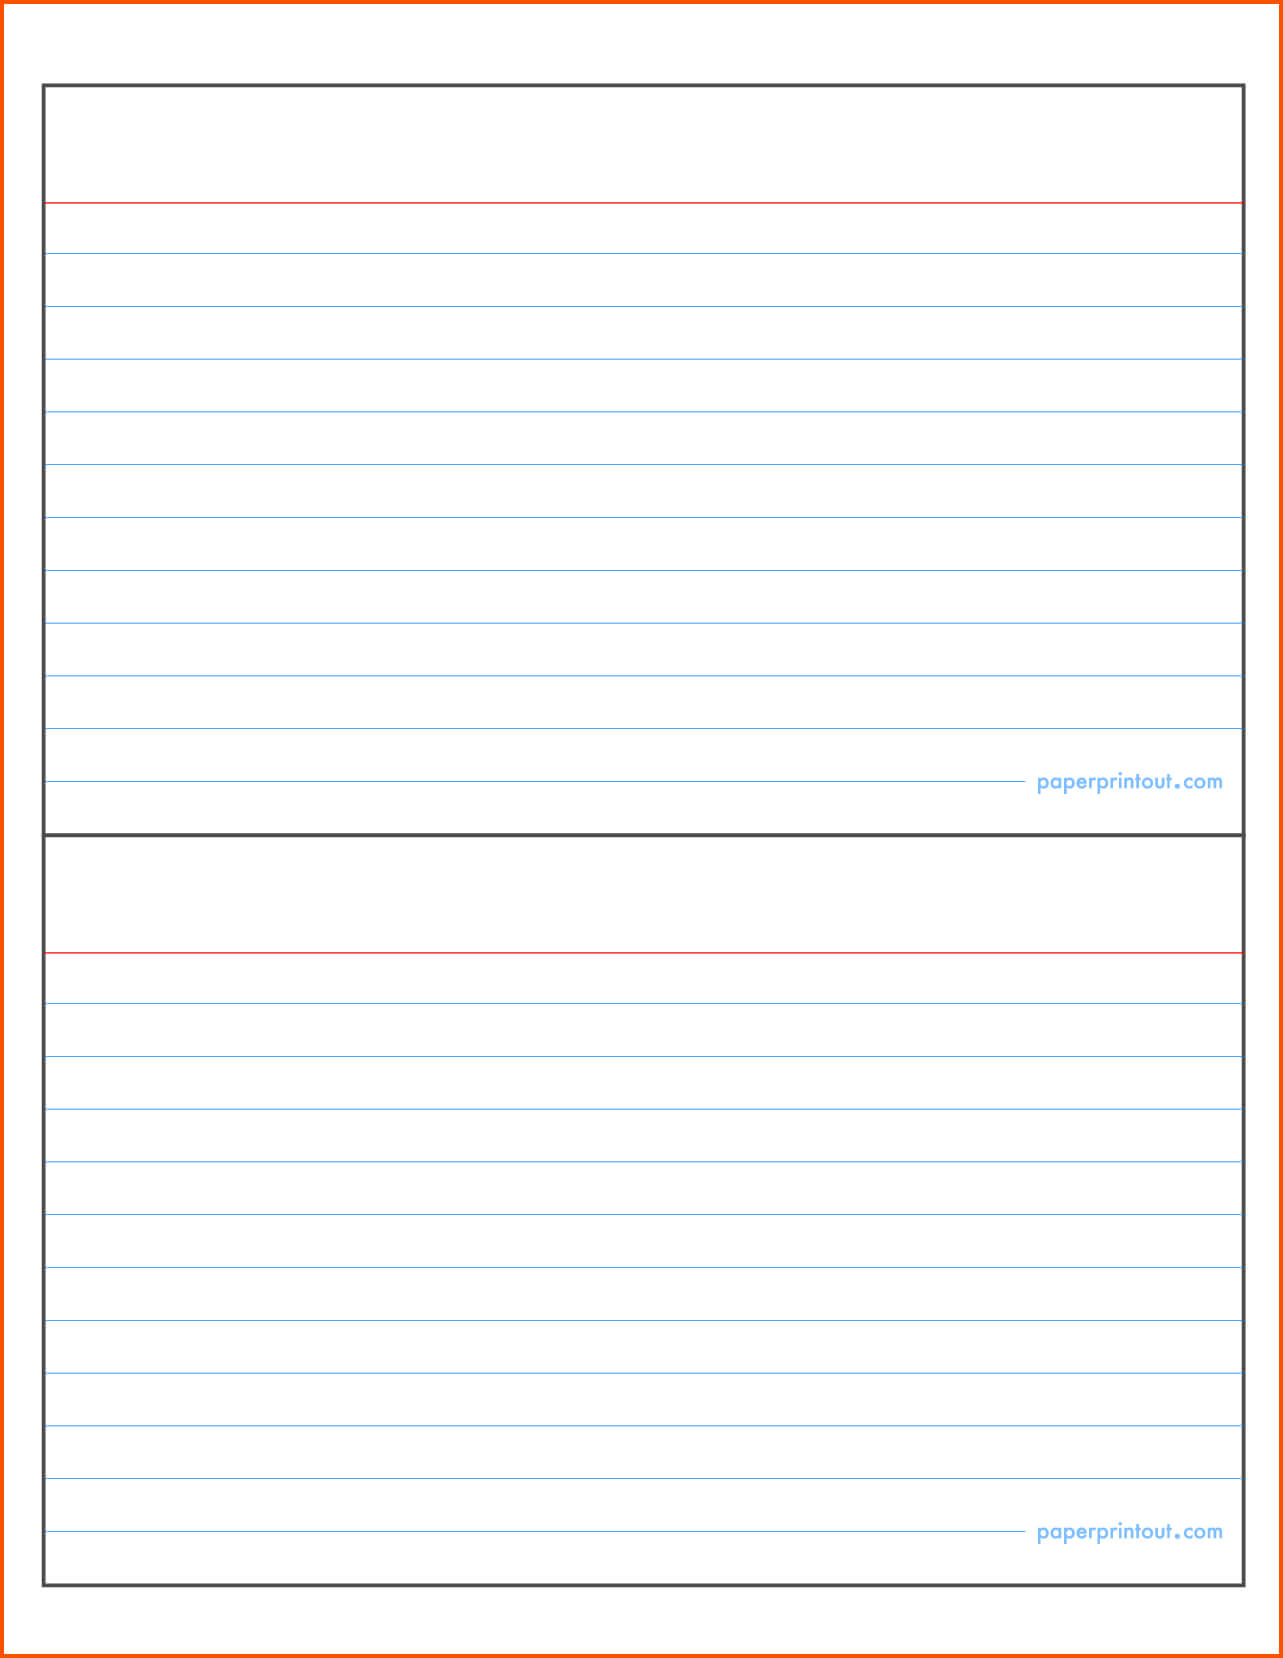 20 Images Of Ms Word 3 X 5 Index Card Template | Zeept Inside Index Card Template For Word